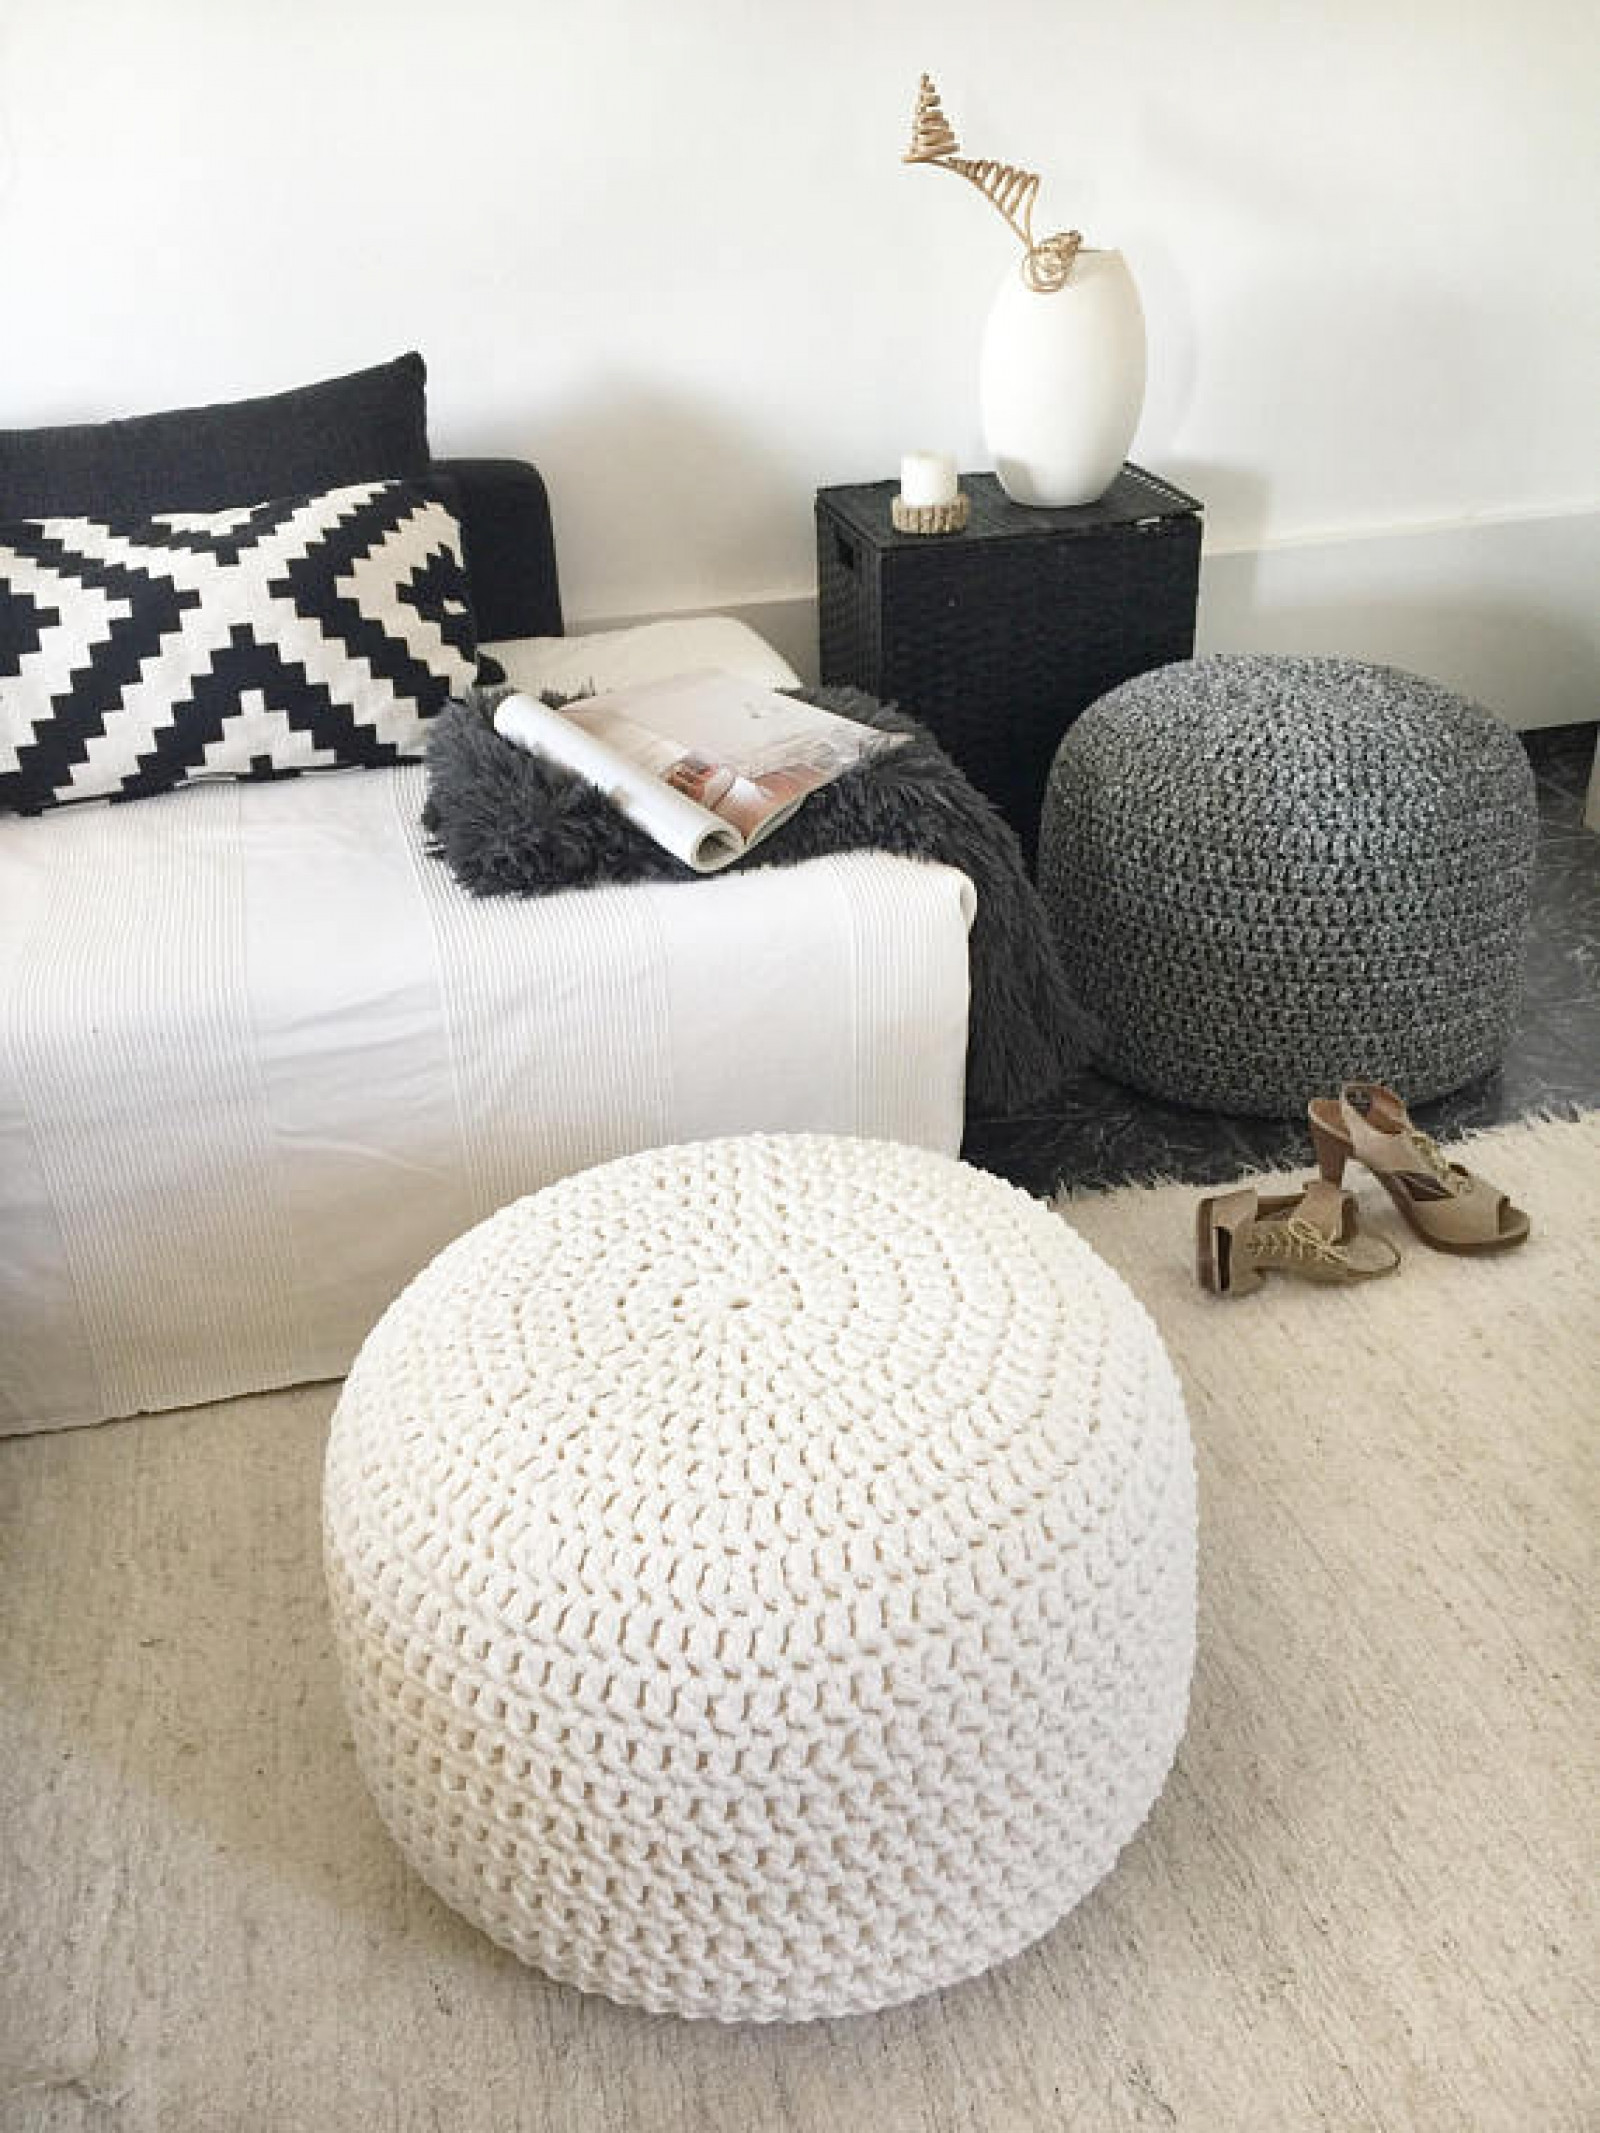 Crochet Ottoman New Crochet Round Pouf Ottoman Nursery Footstool Pouf Of Incredible 42 Ideas Crochet Ottoman